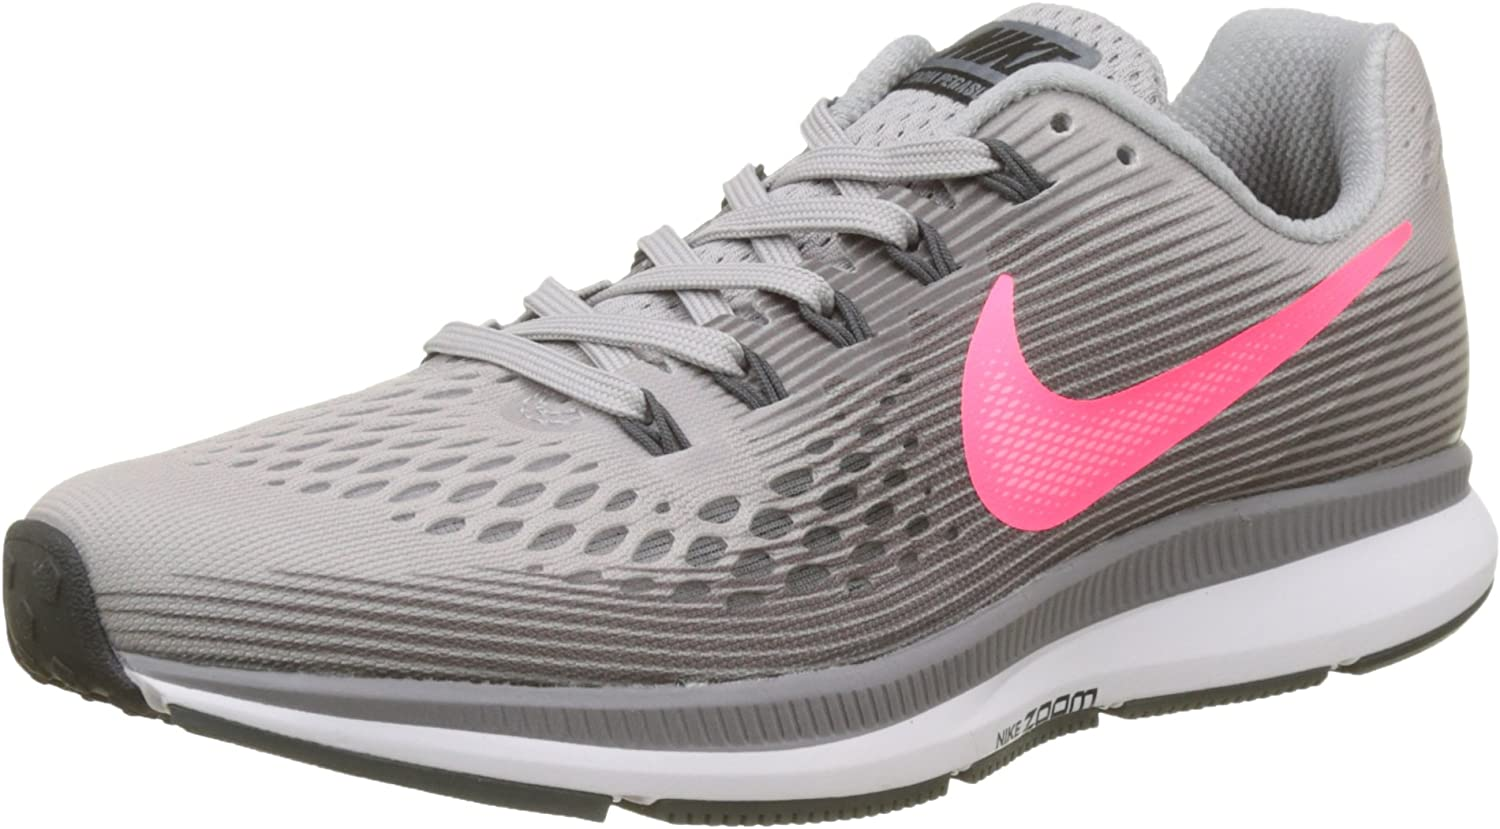 Nike WMNS Air Zoom Pegasus 34 880560-006 Grey Pink Women s Running Shoes